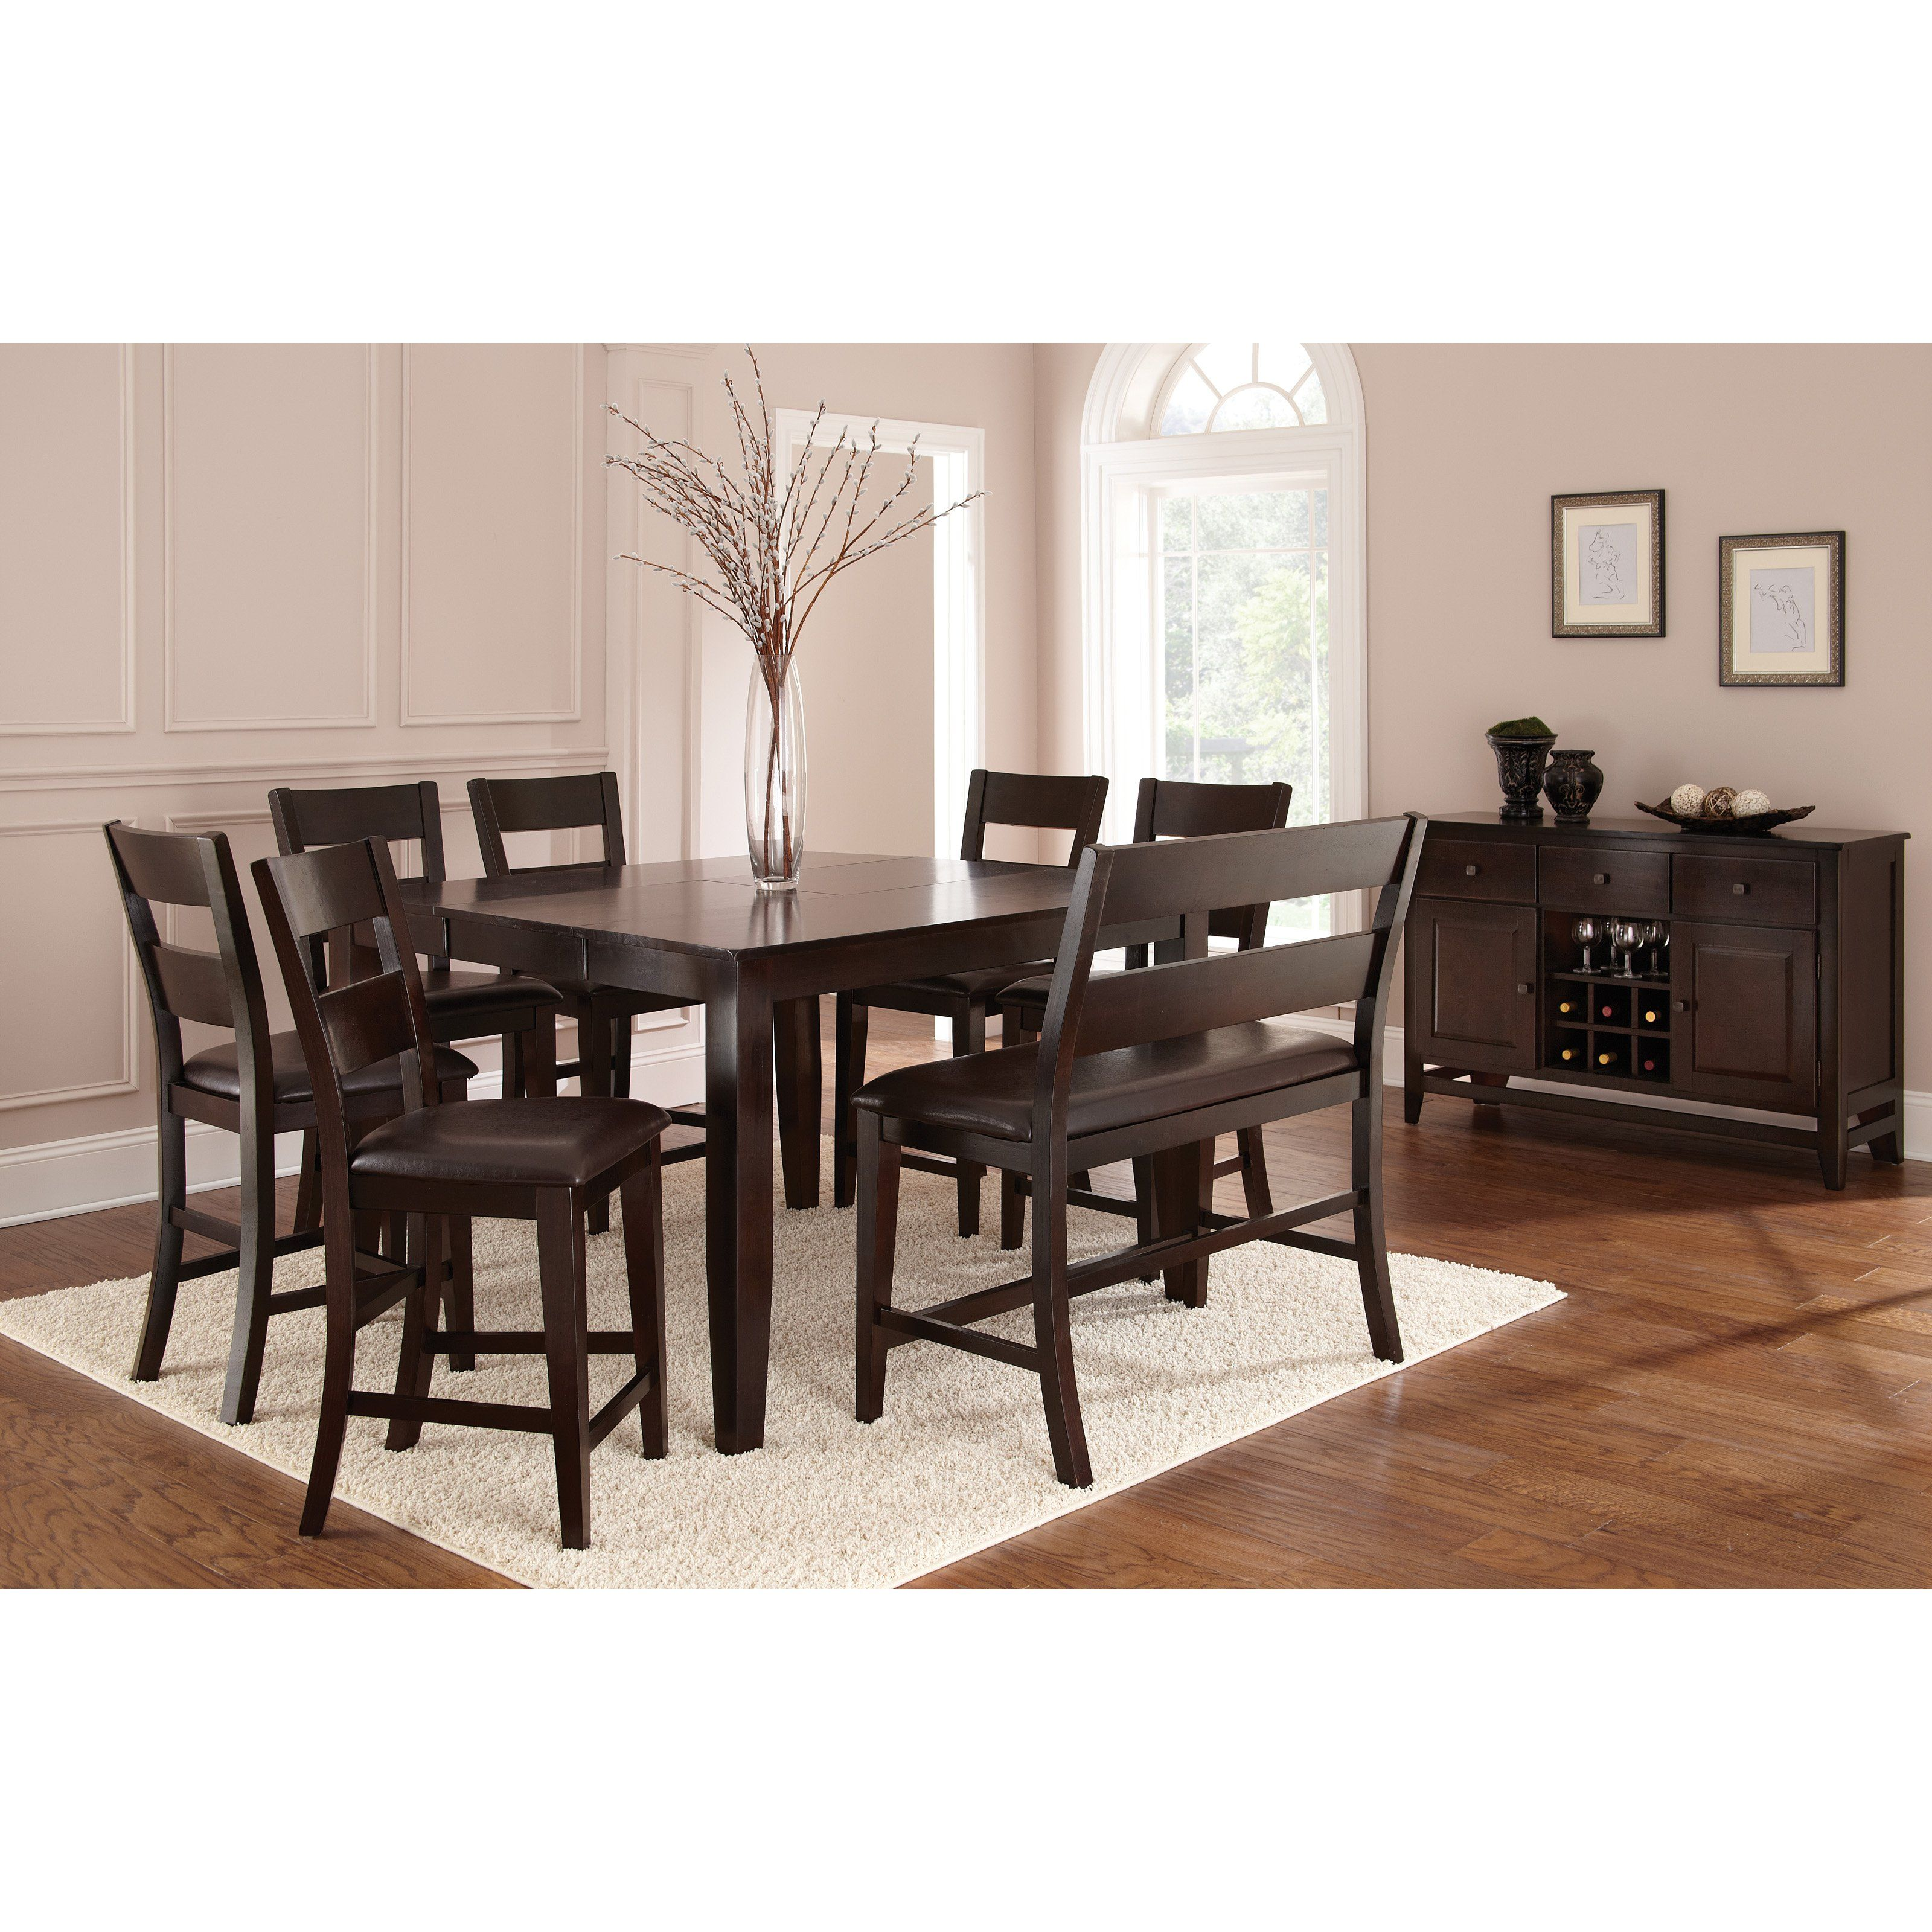 Steve Silver Victoria Counter Height Dining Table   Mango   Distinctive  Dining Starts With Fashionable Focal Points Like The Steve Silver Victoria  Counter ...